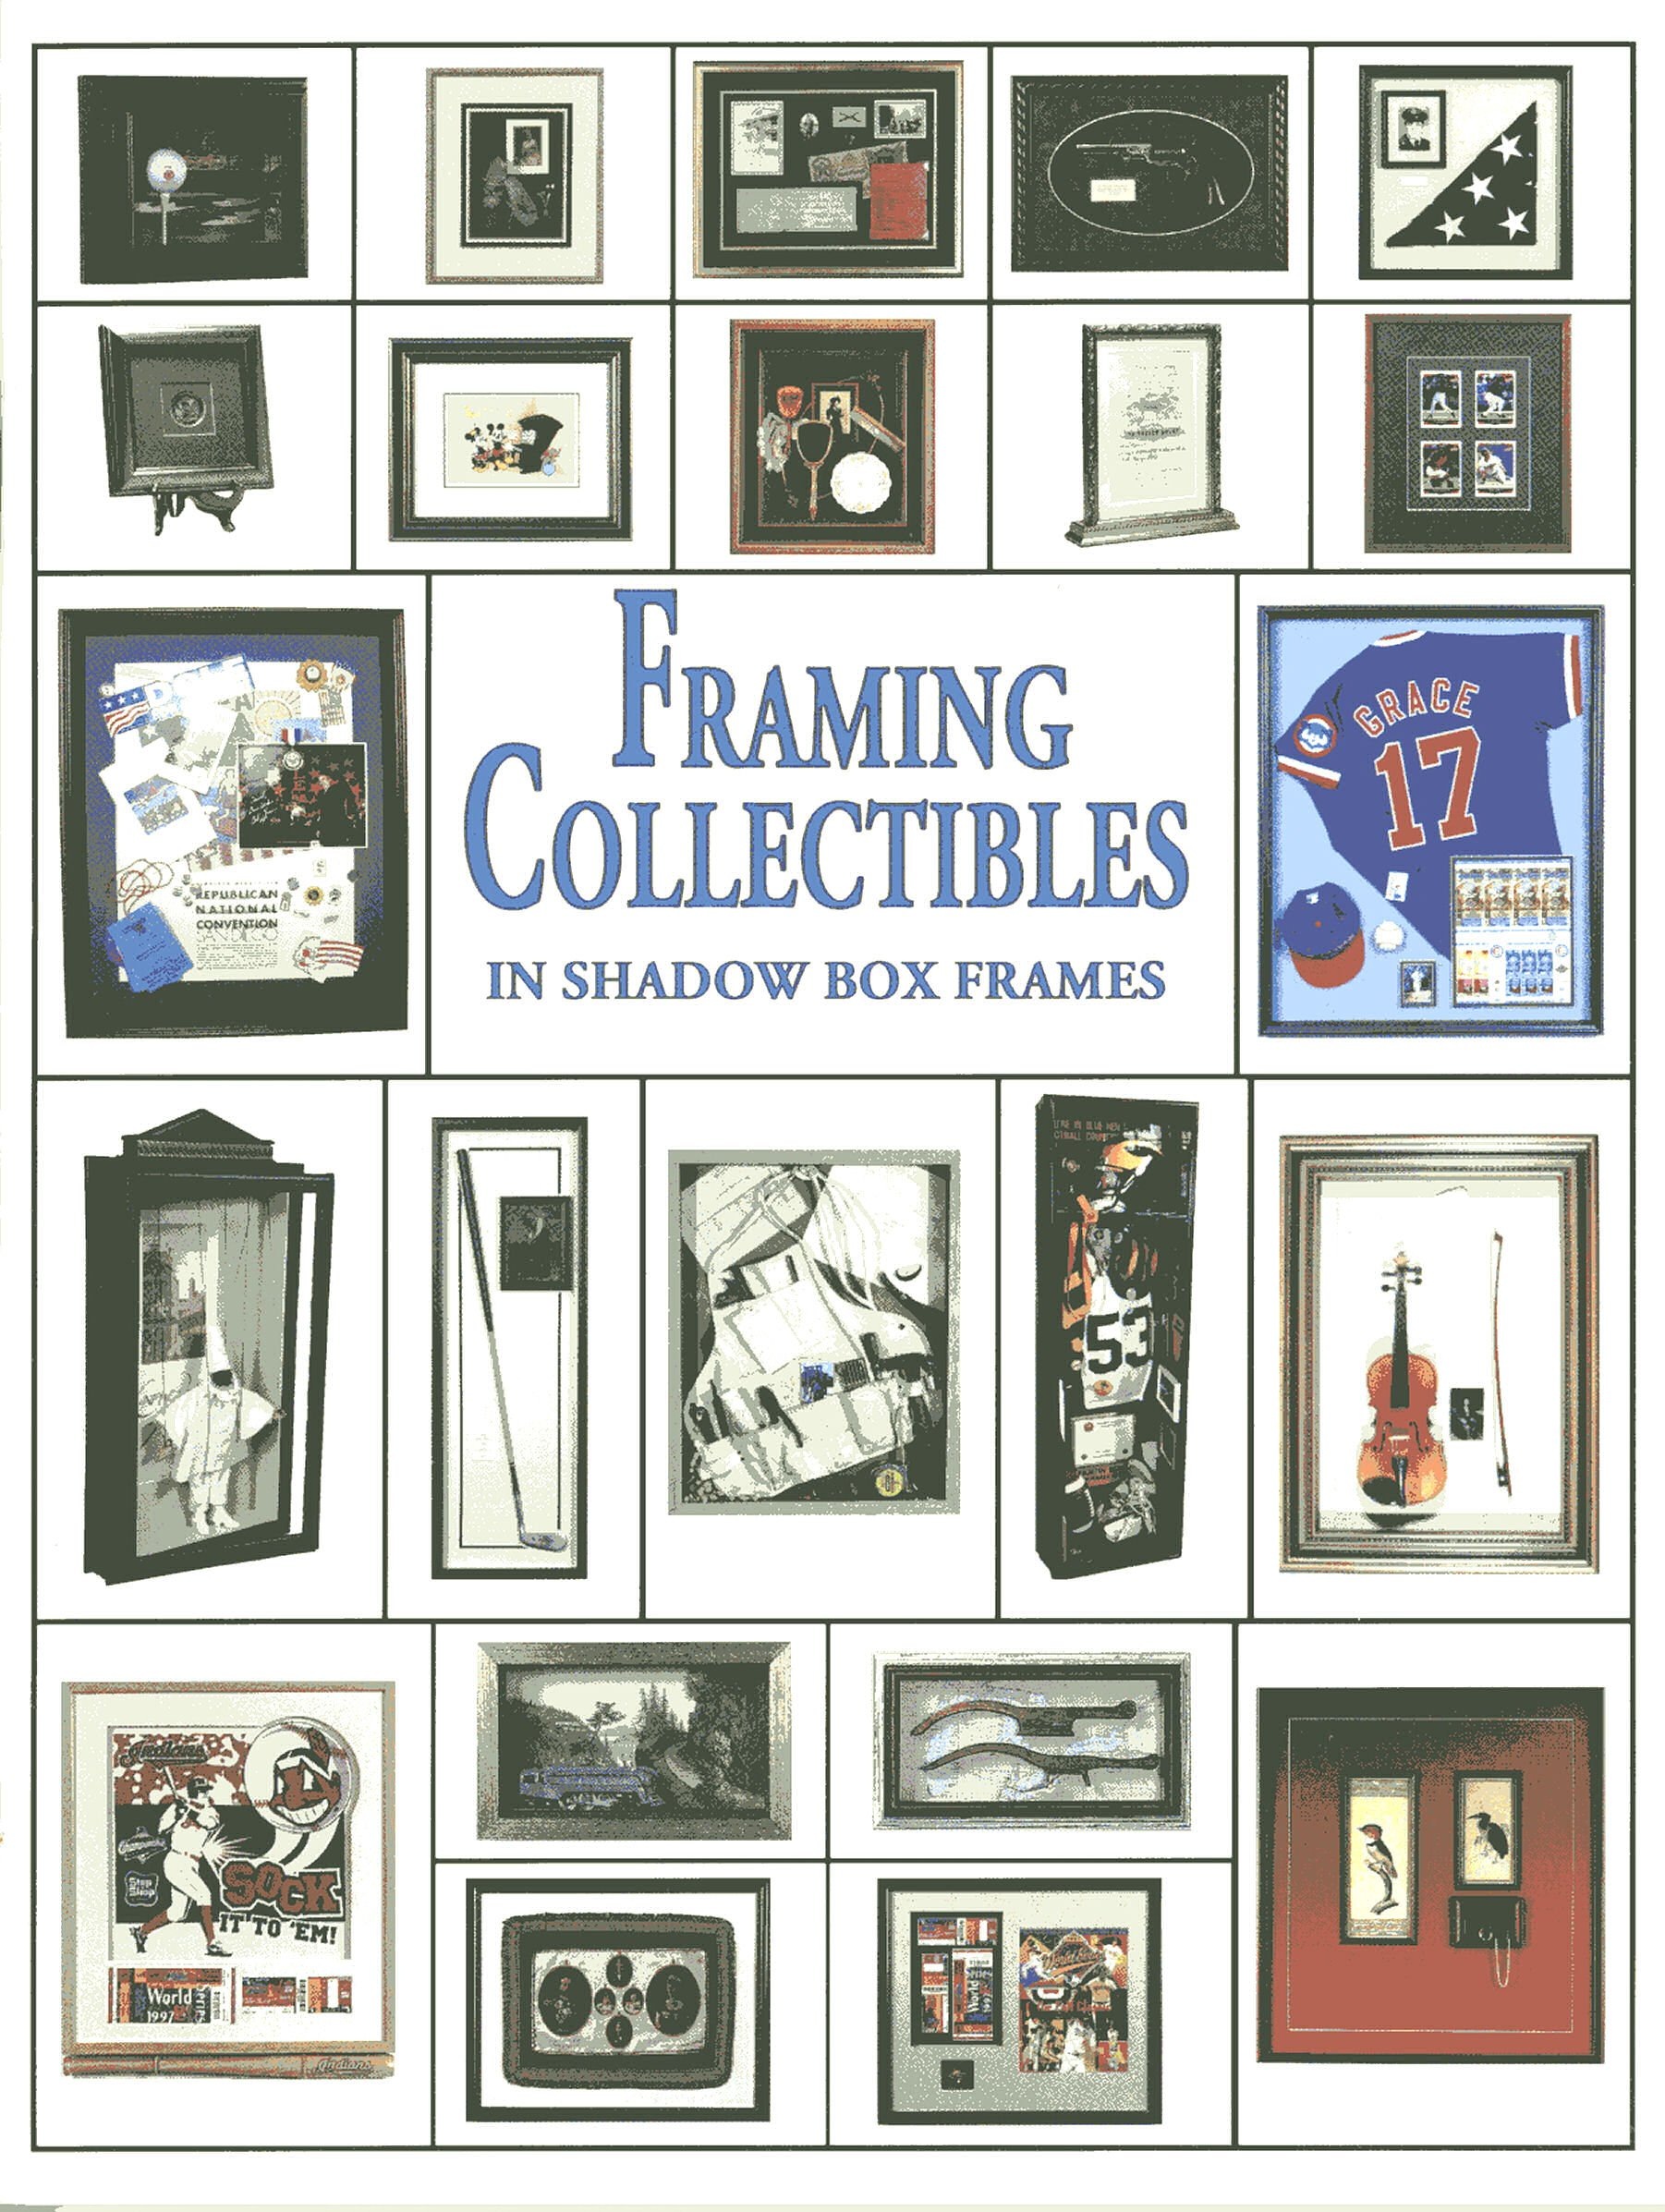 Framing Collectibles in Shadow Box Frames